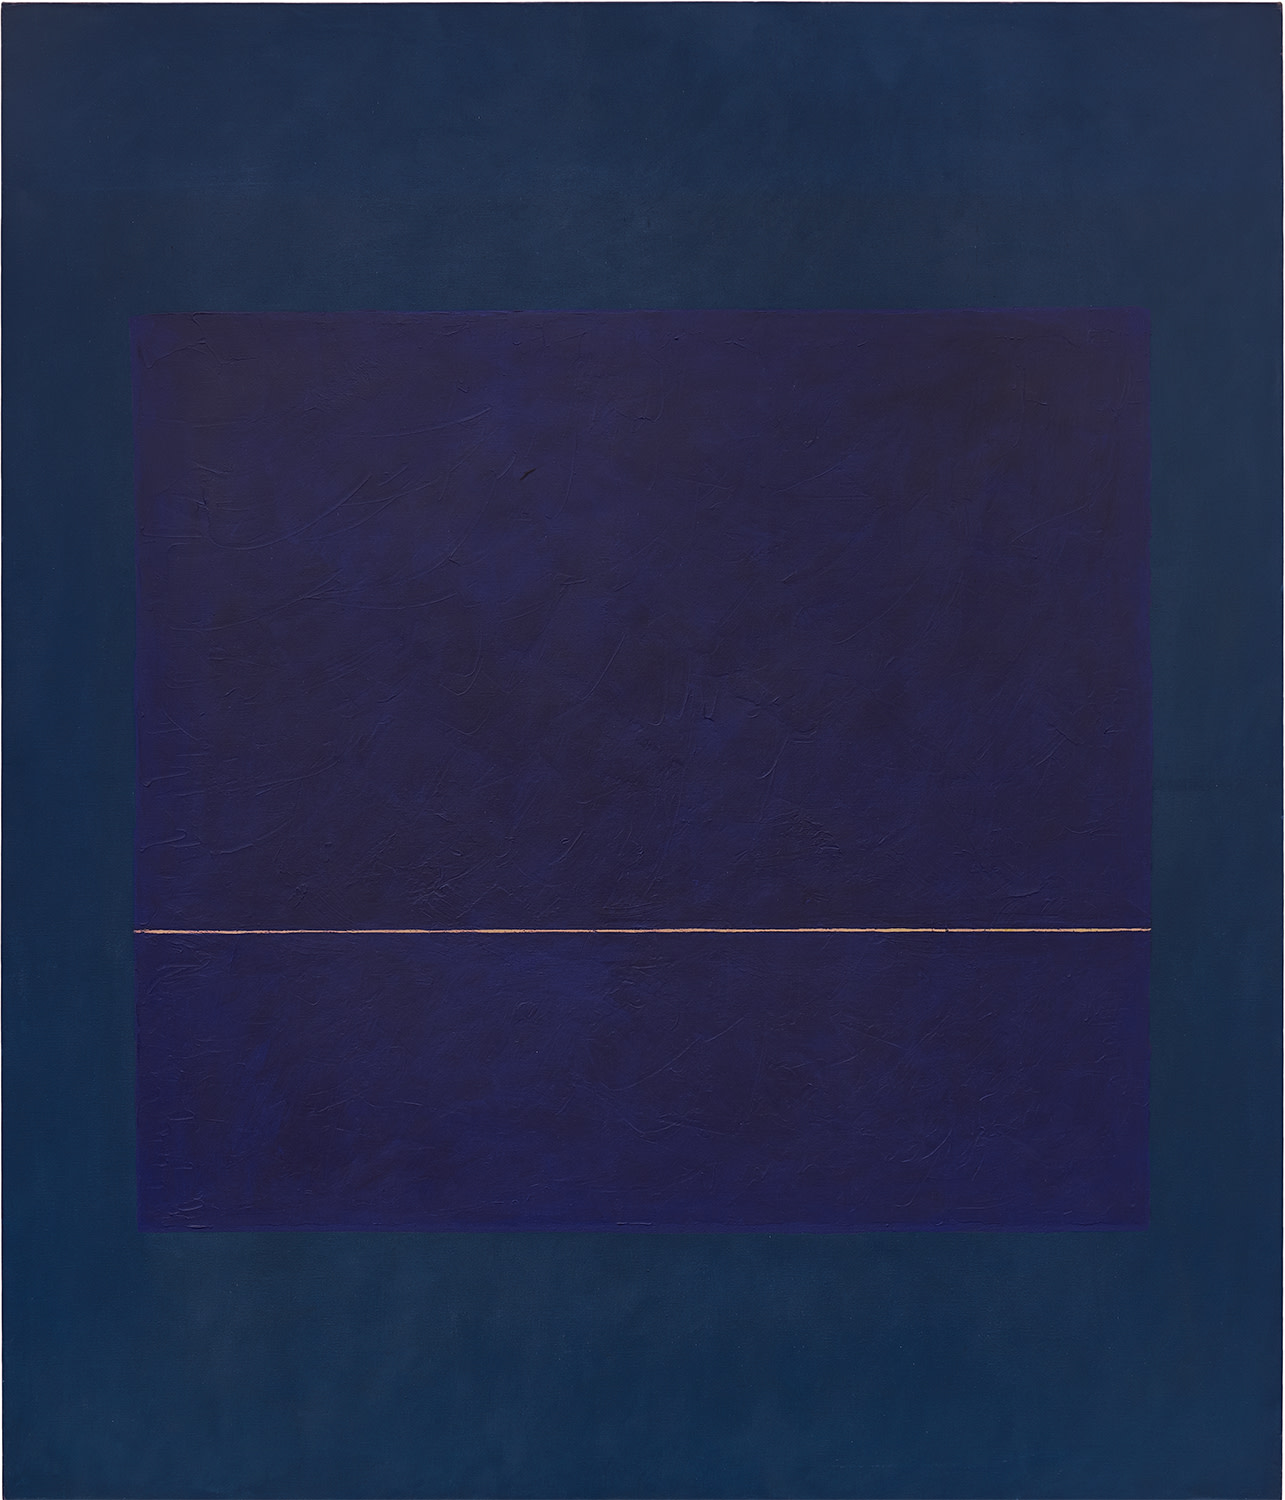 Blue Space, 1974